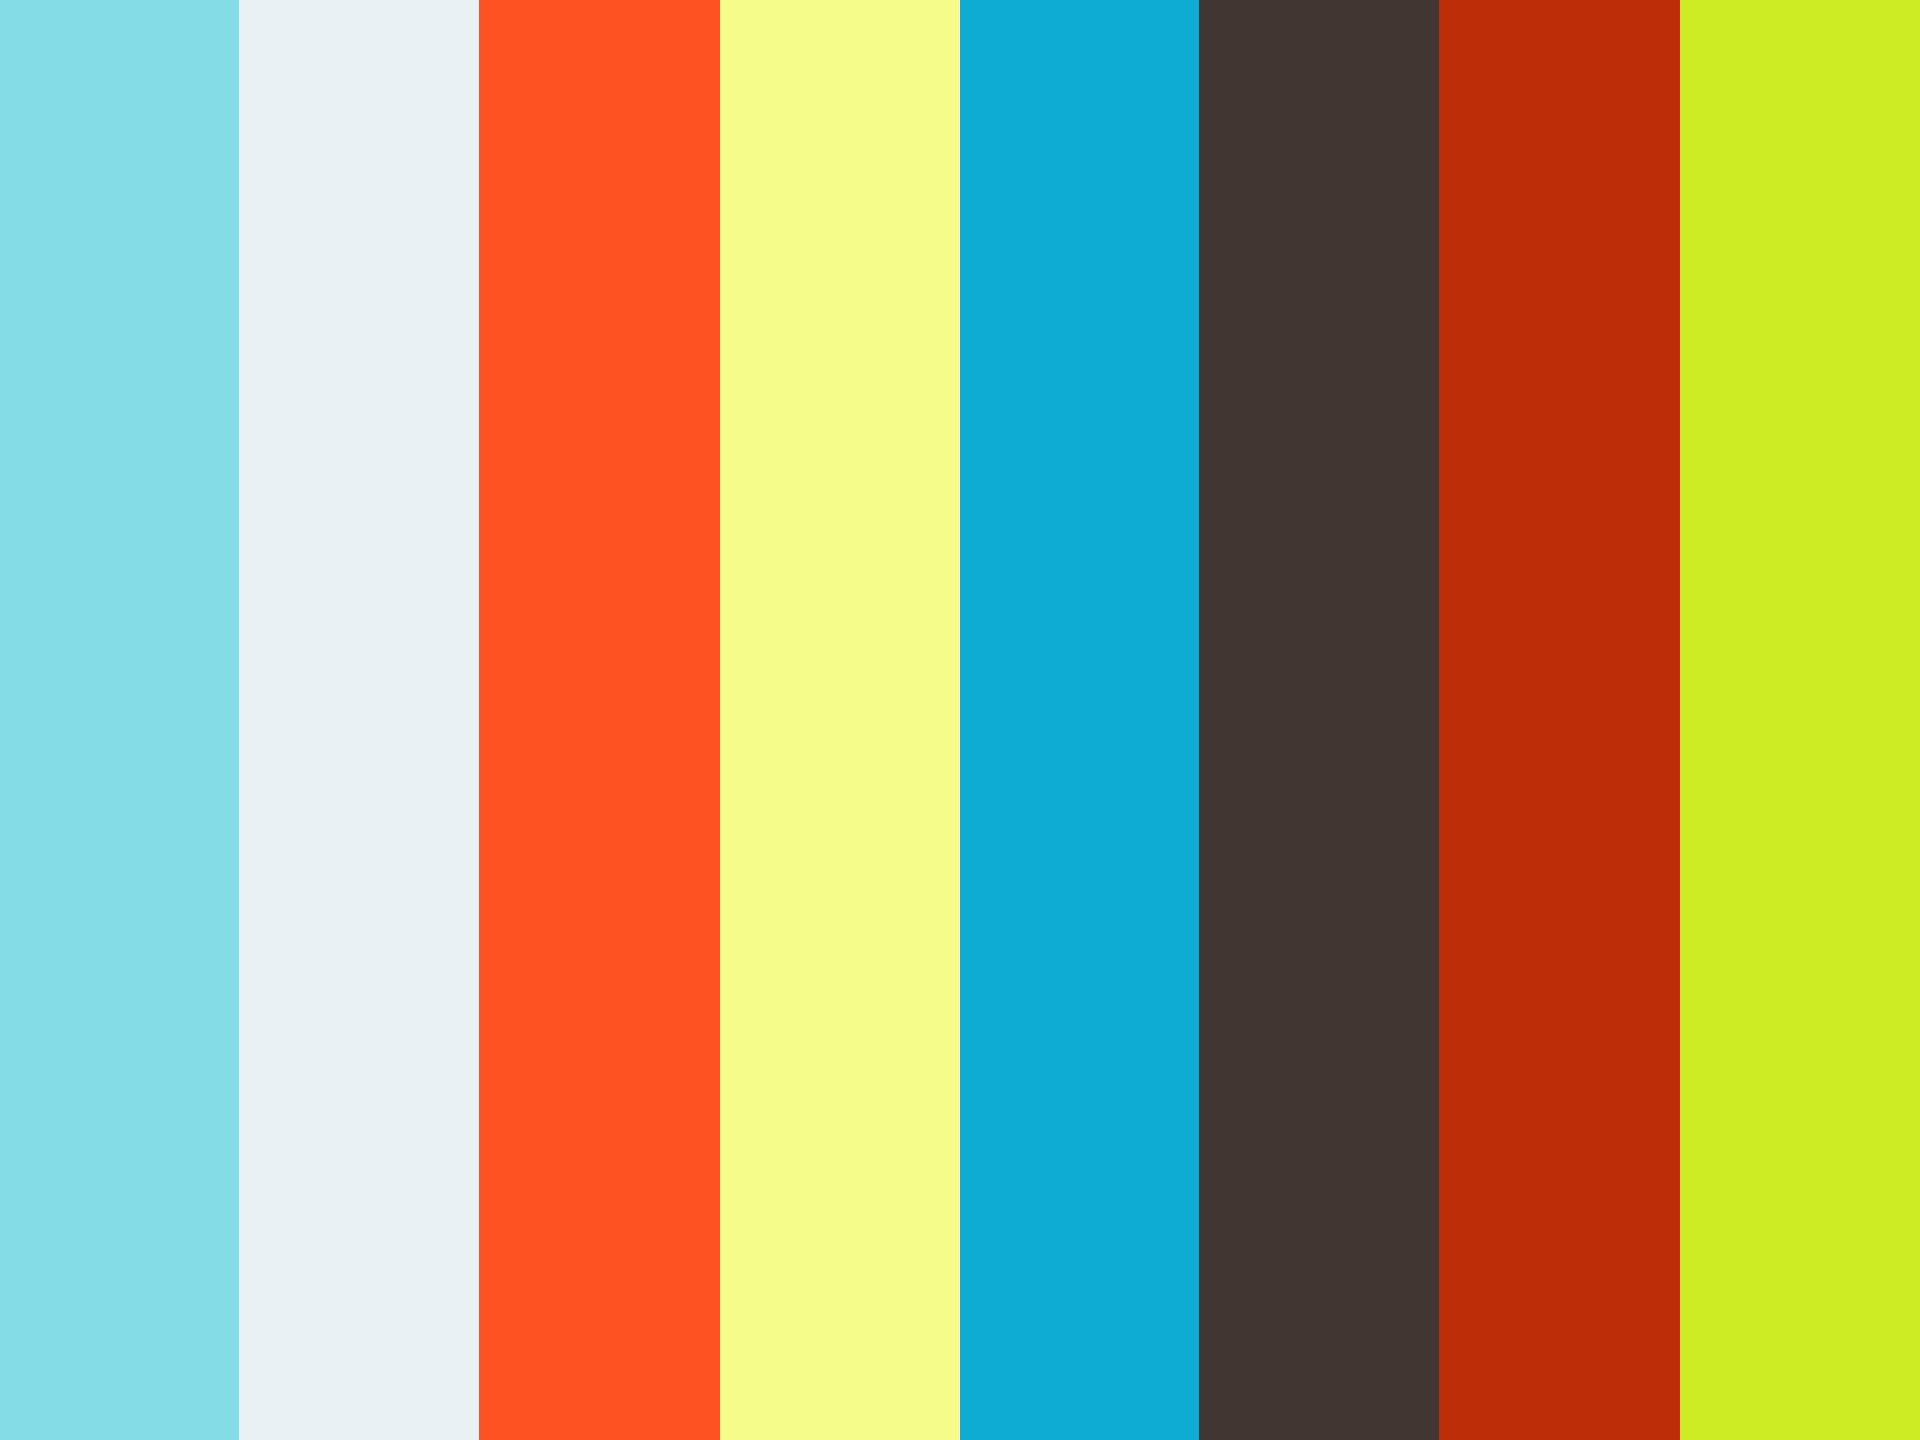 Evaluation of 30-day Outcomes Following Diverting Loop Ileostomy Takedown 2016